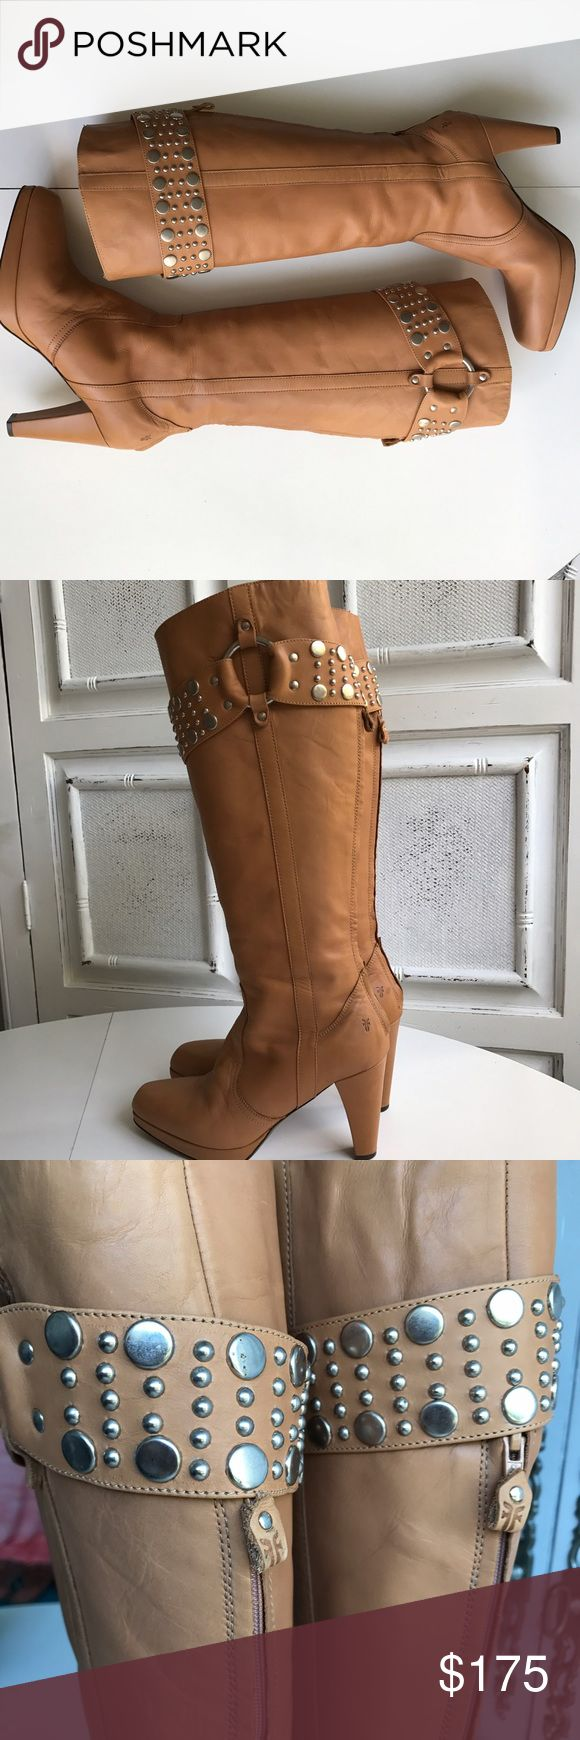 """❤️FRYE KATIE TALL BOOTS Absolutely gorgeous FRYE KATIE TALL BOOT. Made in Italy❤️Excellent condition. Super quality camel leather, adorned with silver stud detail around calf. Zip up back. Heel height=3 3/4, Heel to shaft=19"""", Circumference at opening=15 1/2"""". QUALITY SPEAKS FOR ITSELF!!! Frye Shoes Heeled Boots"""